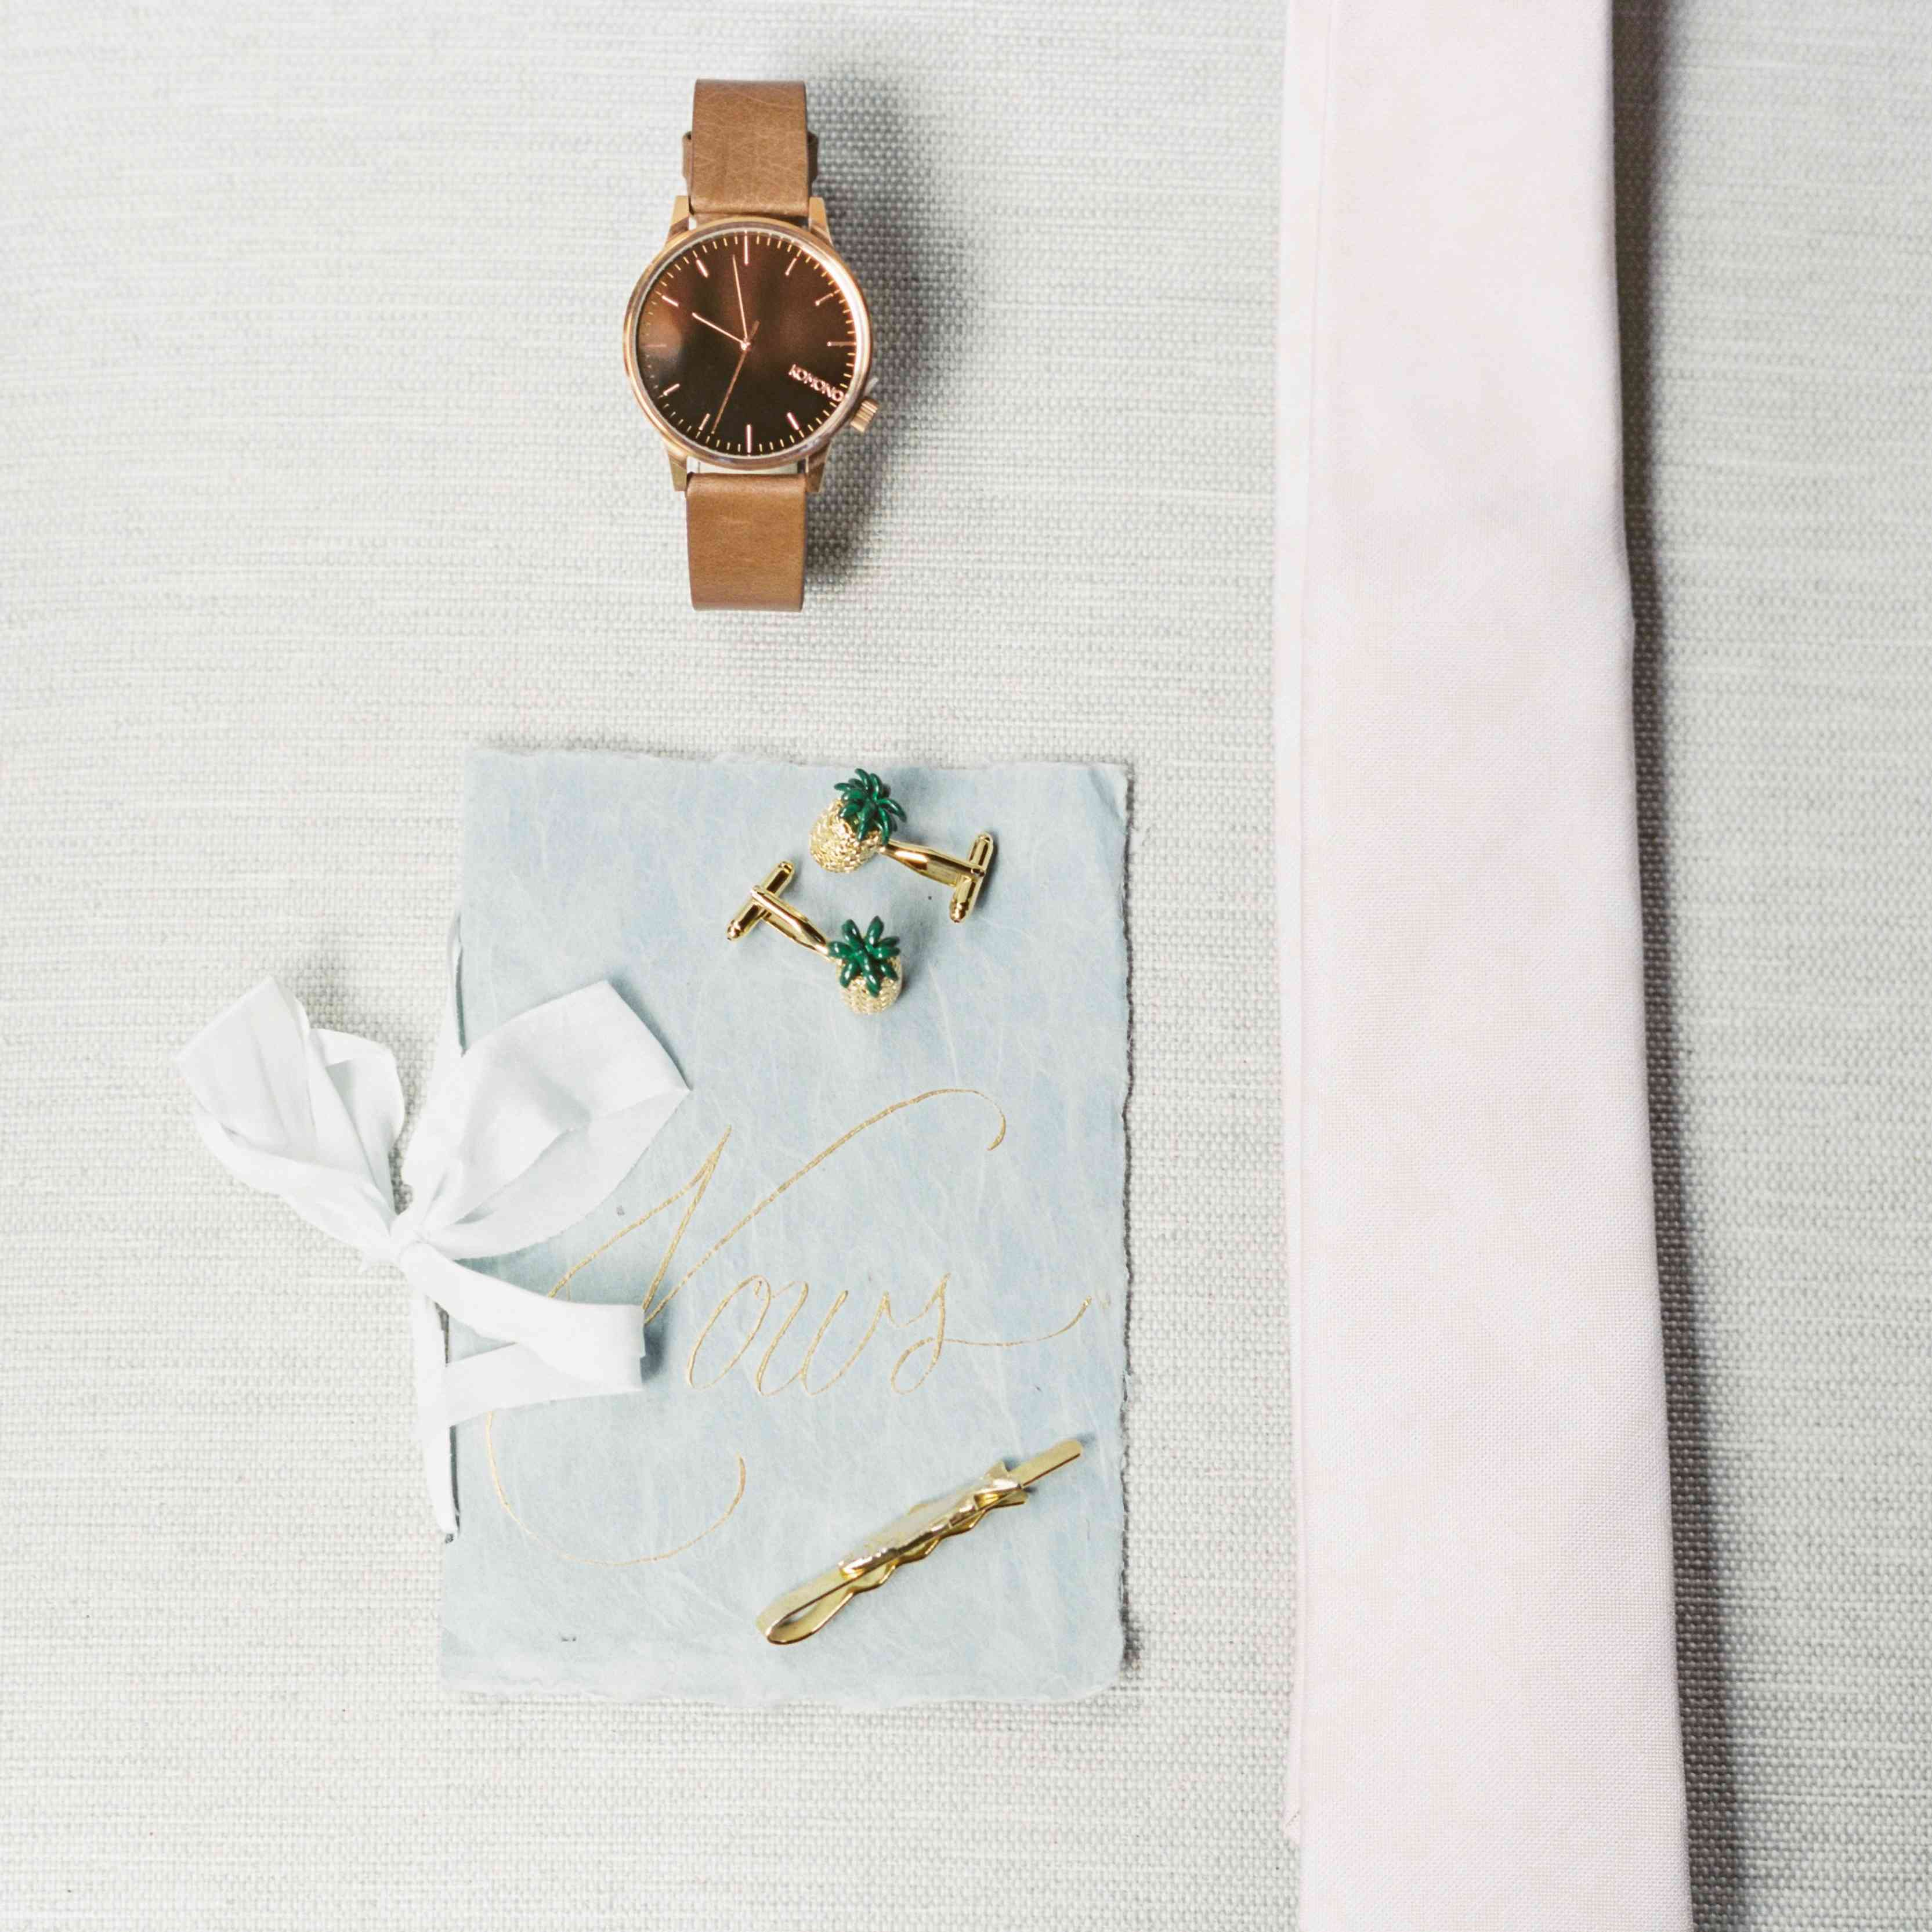 Flat lay or watch, vow book, tie, and cuff links